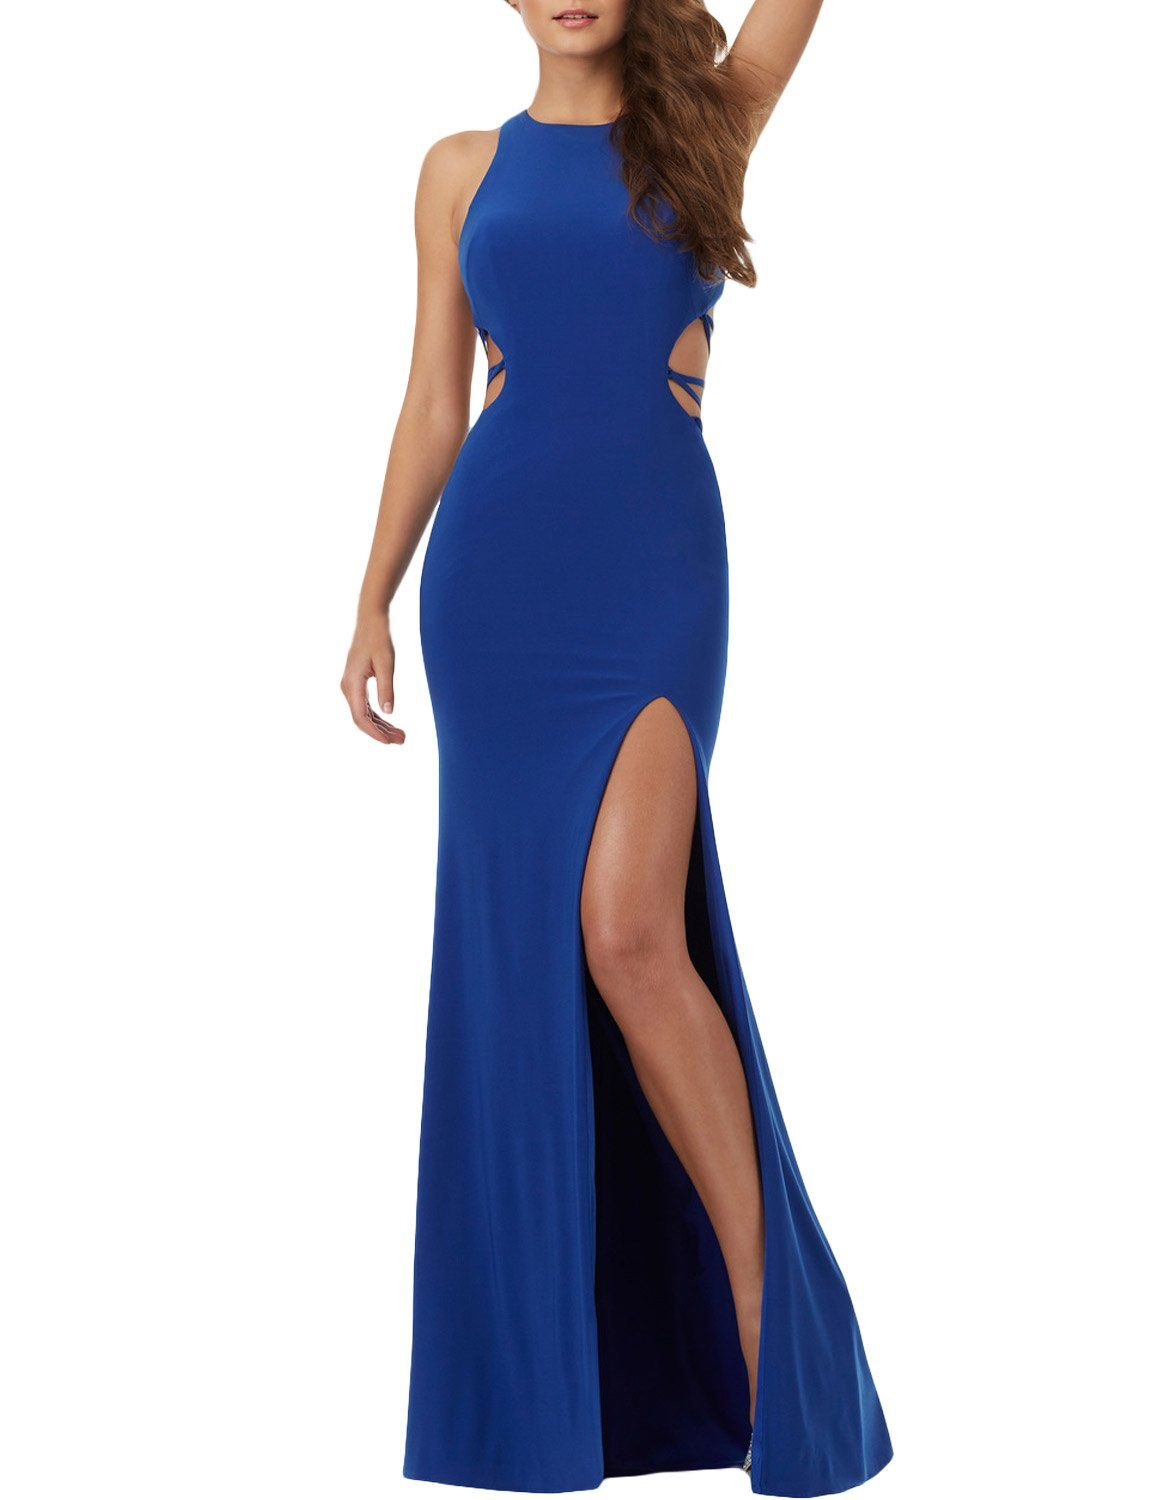 Promme mermaid prom dresses scoop with open back sexy party